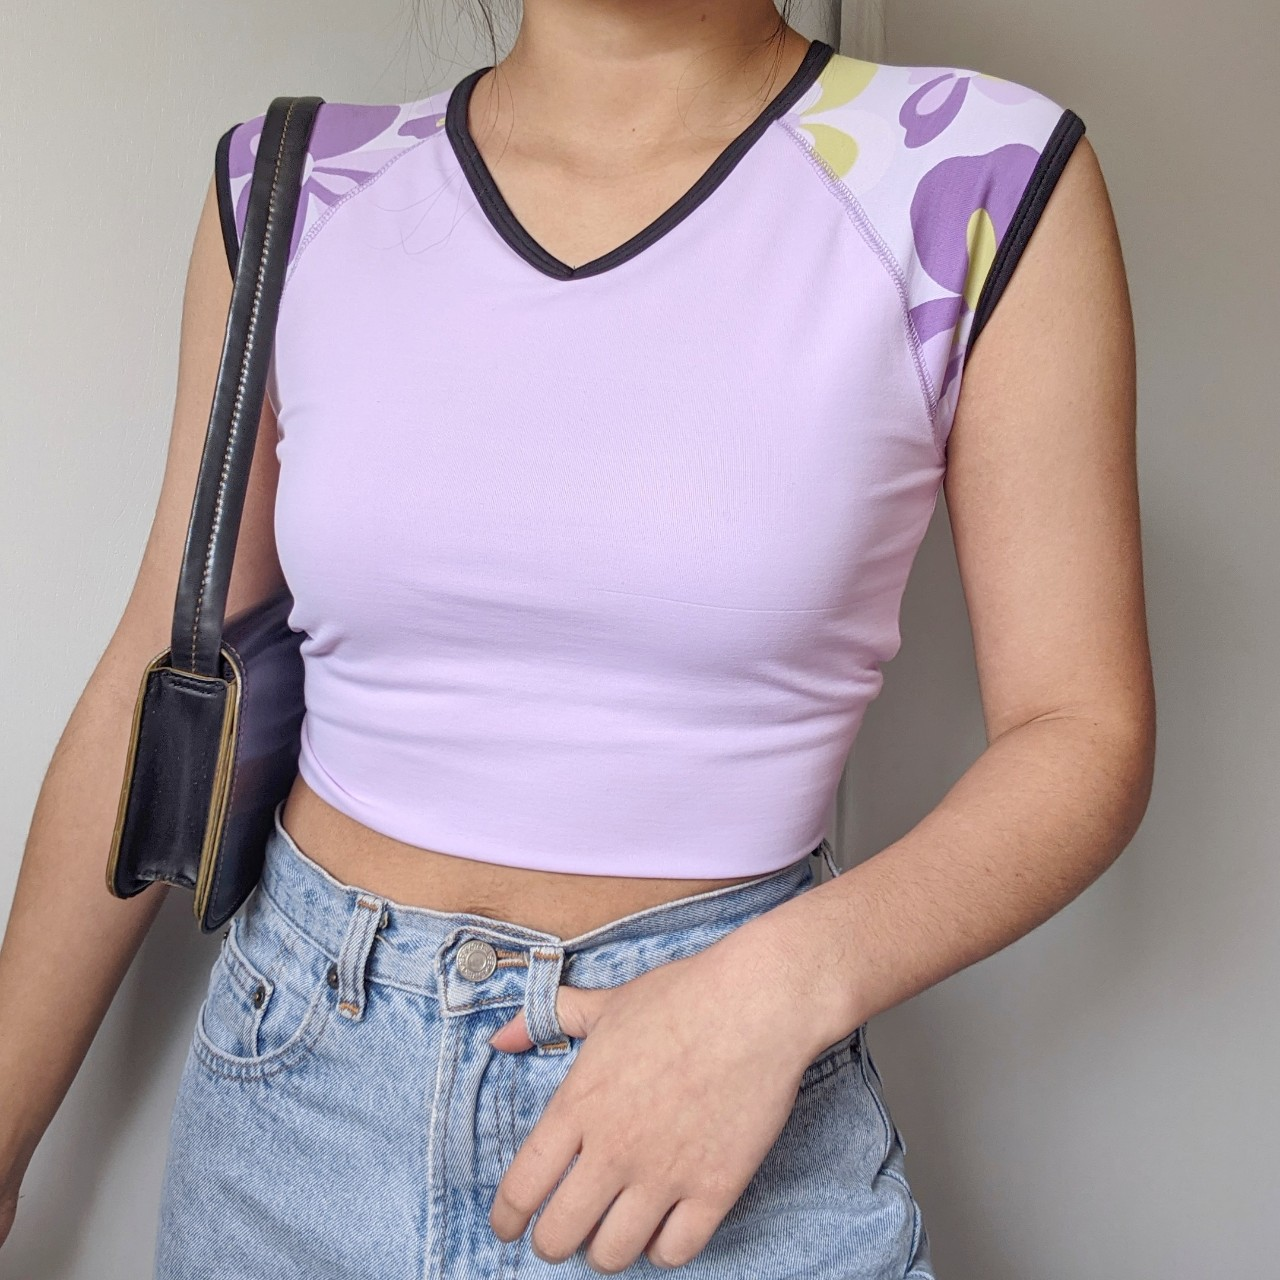 Y2k dri fit baseball style Pastel lilac tee with